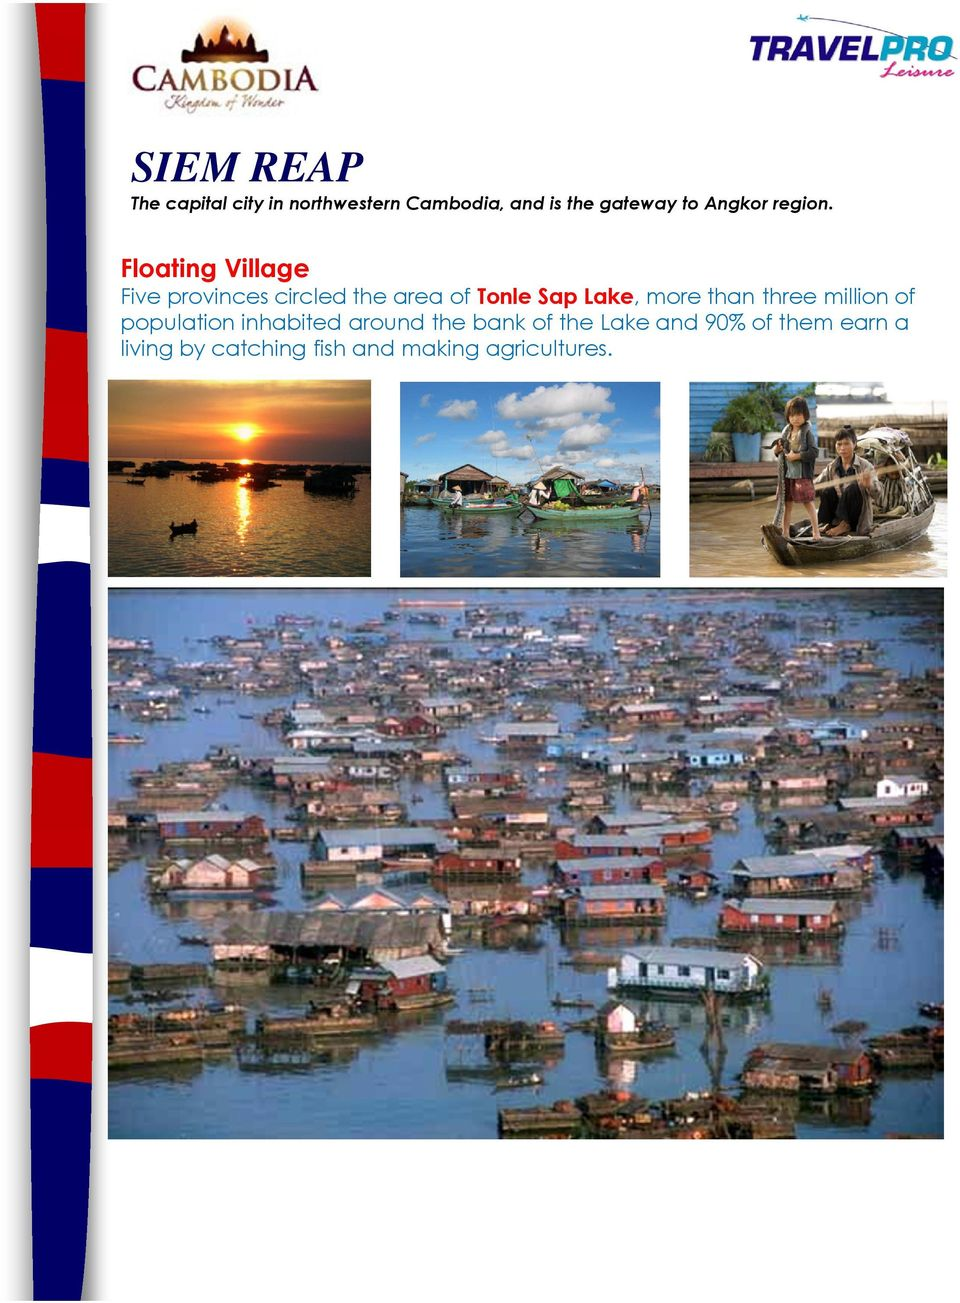 Floating Village Five provinces circled the area of Tonle Sap Lake, more